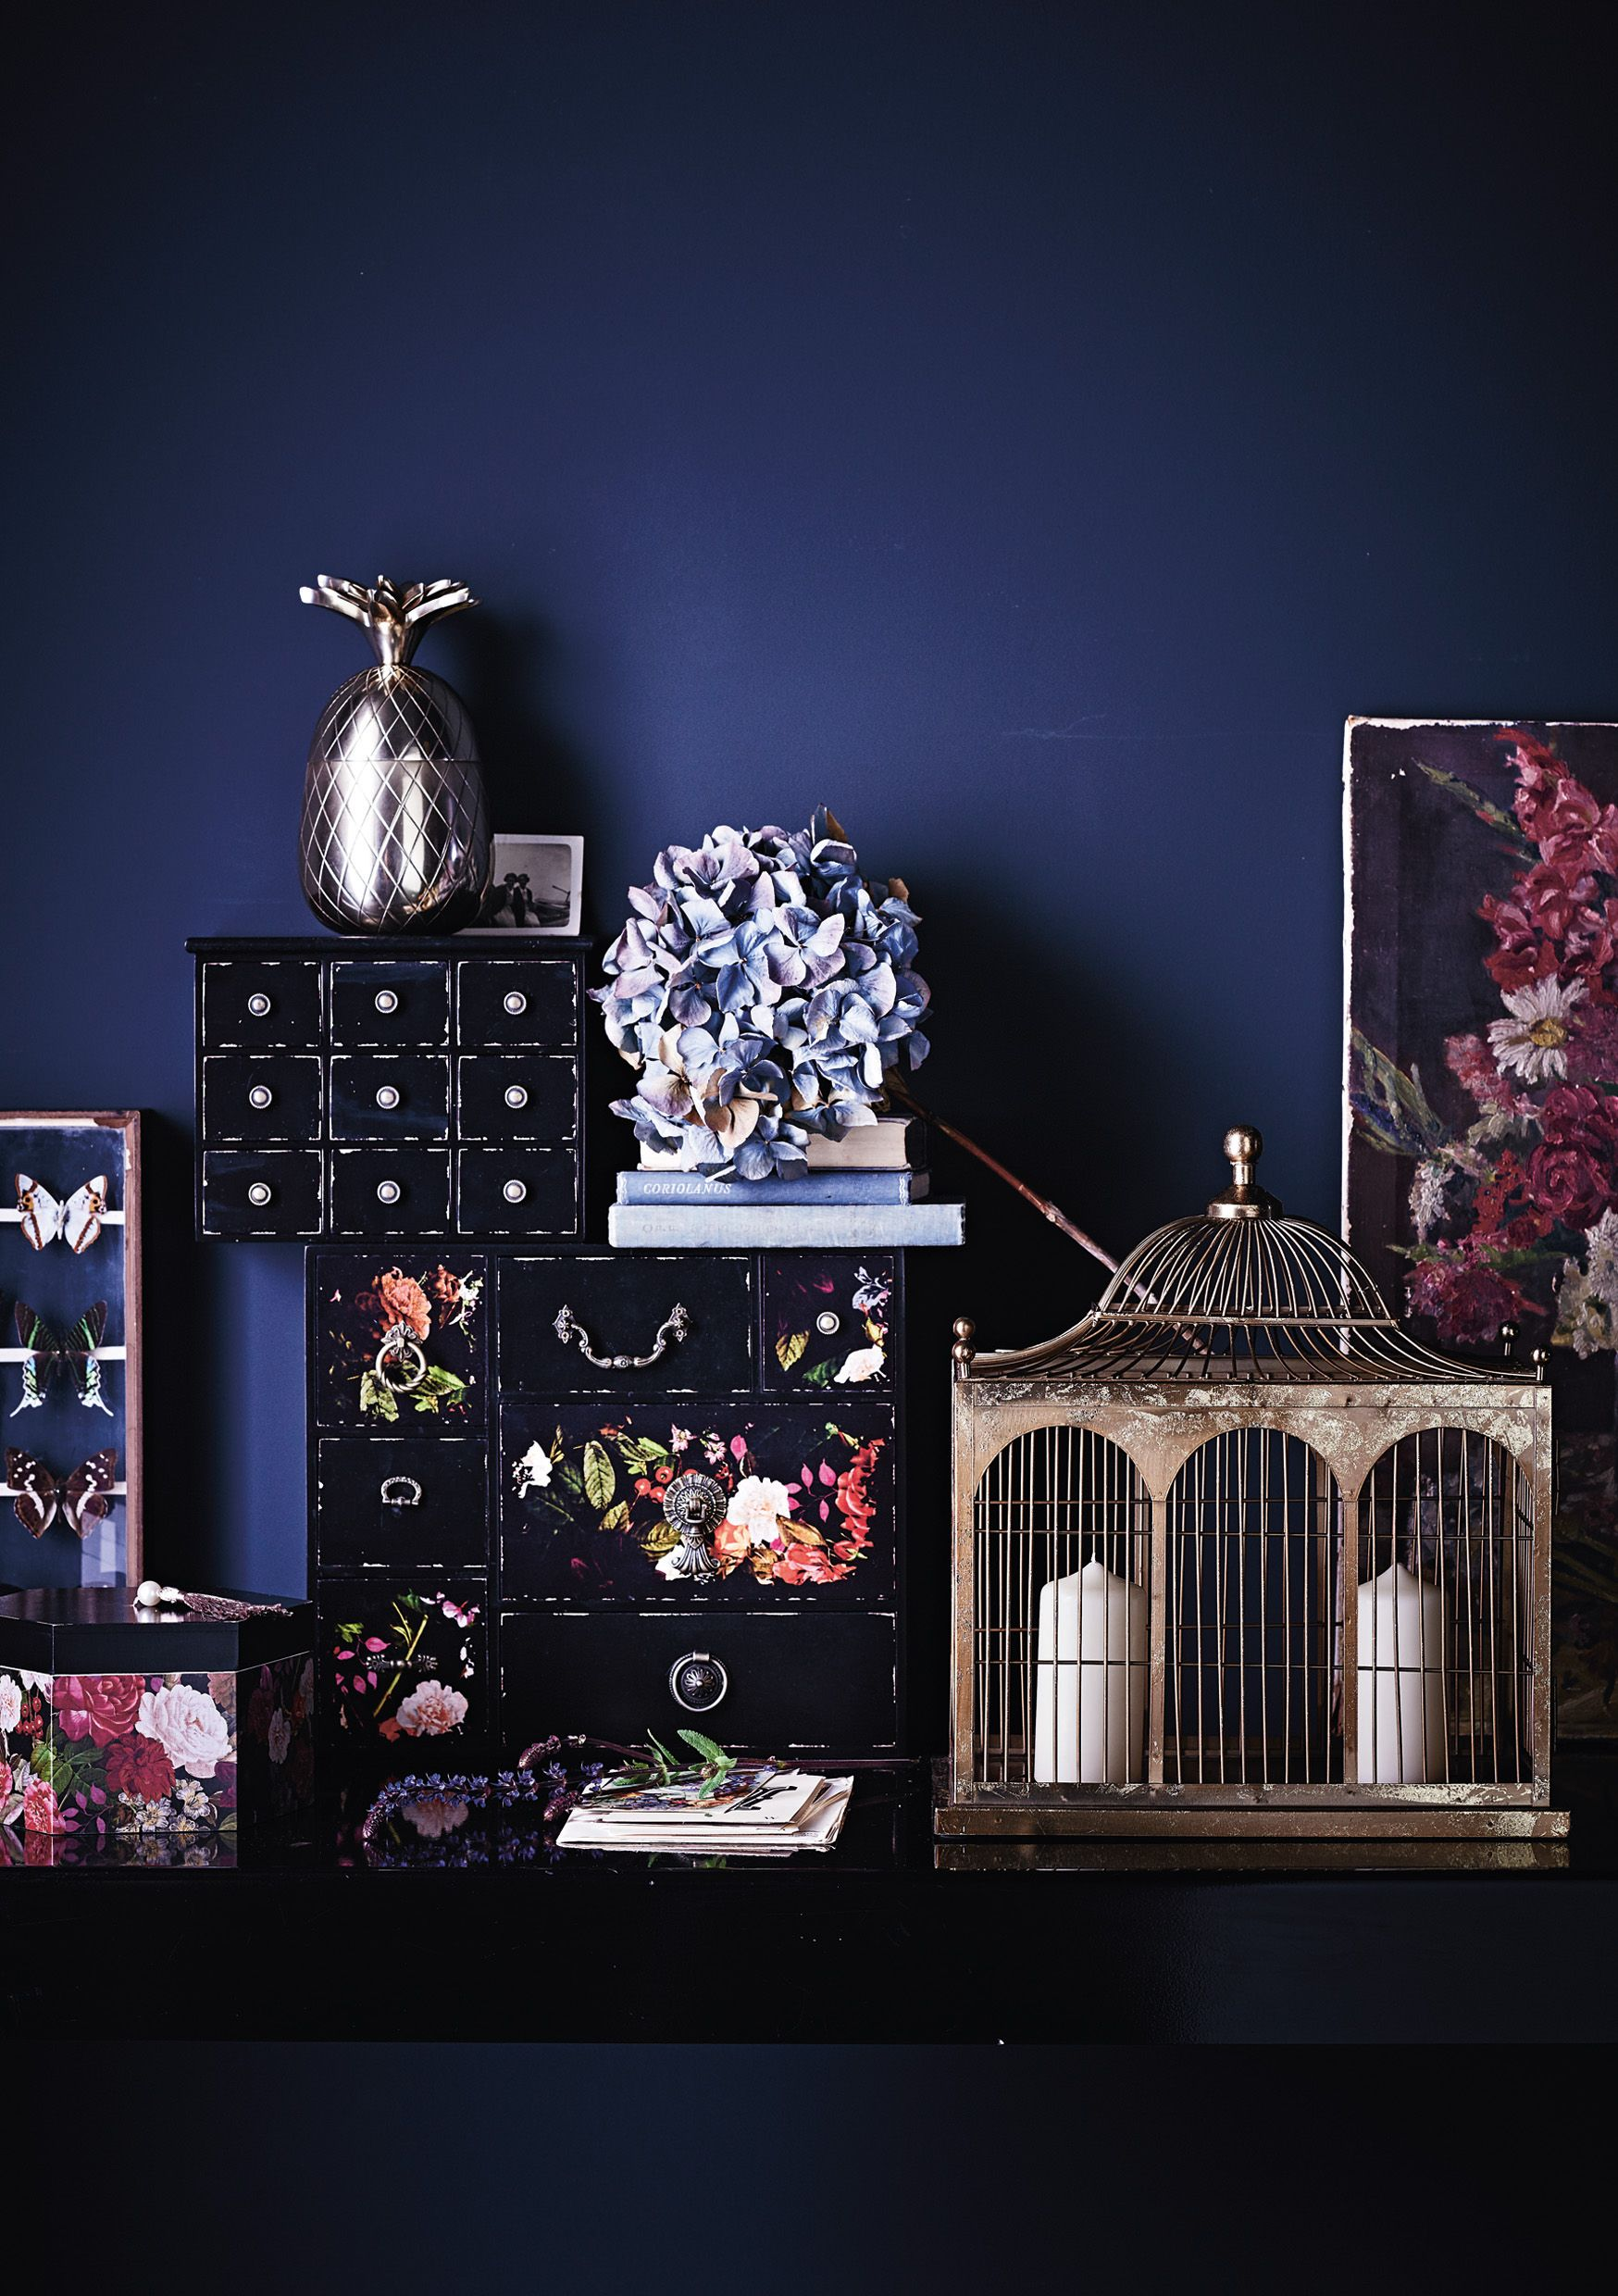 Merging classic vintage-style pieces such as ornamental birdcages with fun ornaments and motifs, this collection is for those with an individual style.